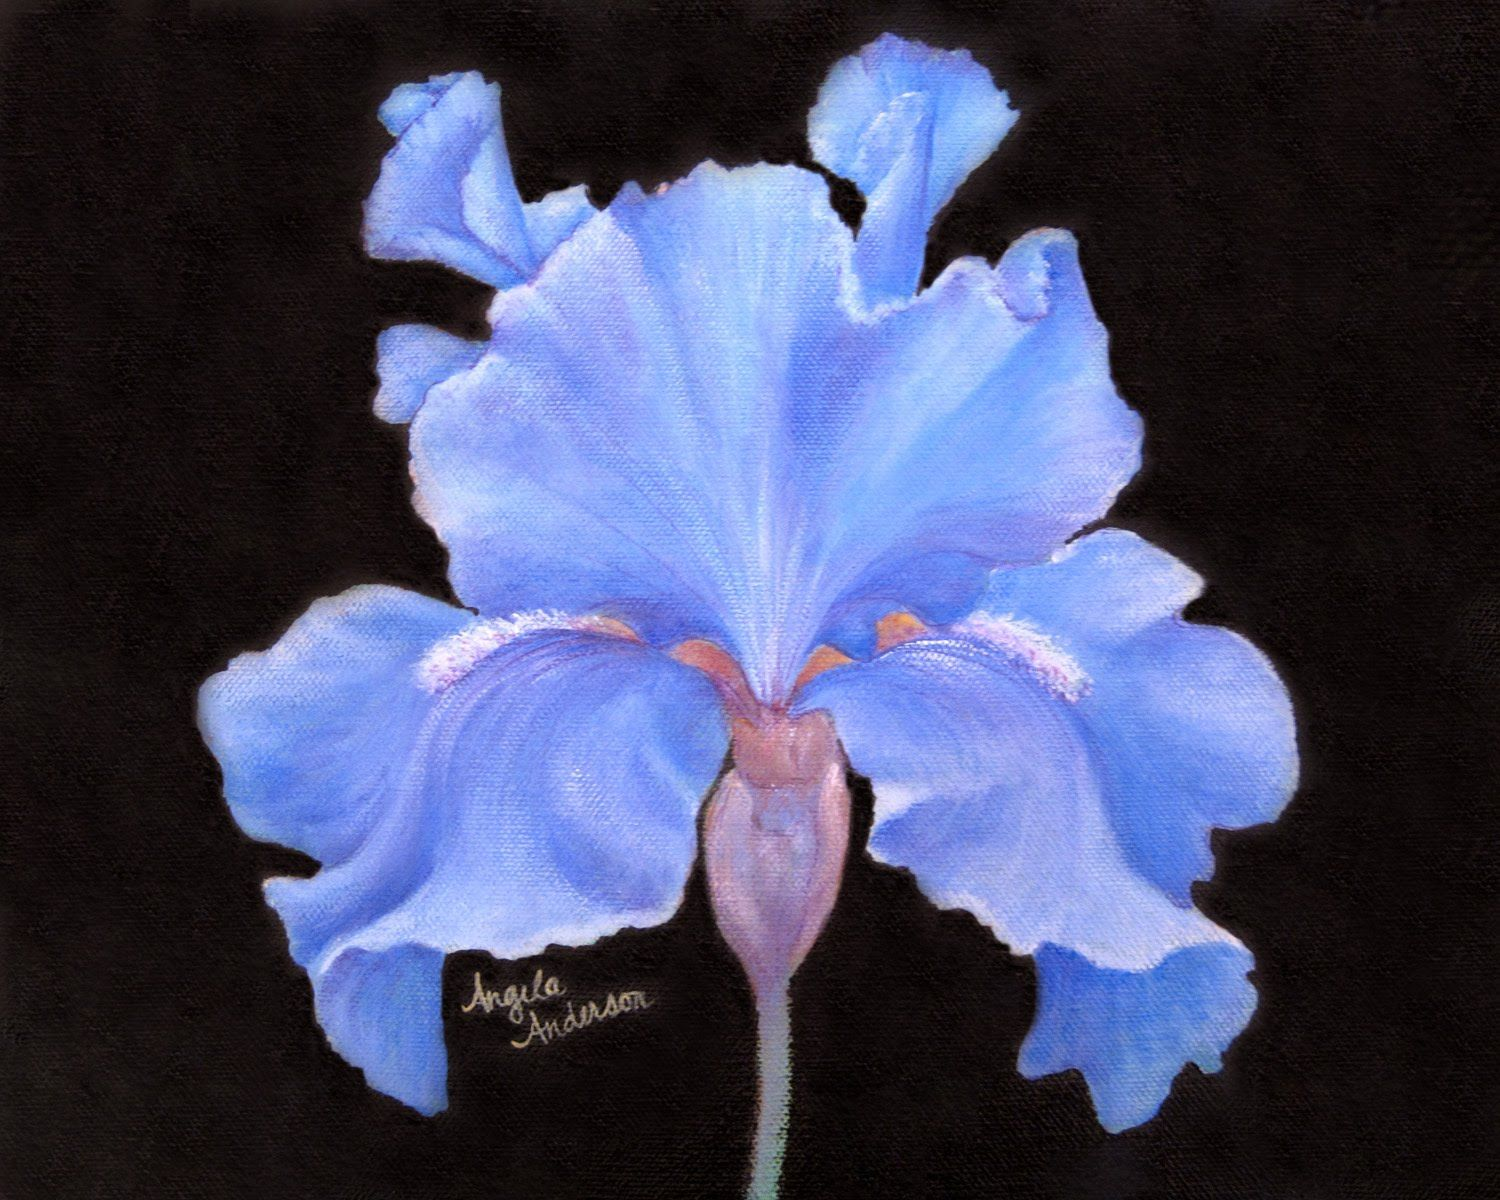 Watch for the flowers on a black background acrylic paintings learn how to paint irises with acrylics artist angela anderson shows step by step how to create this colorful iris flower painting izmirmasajfo